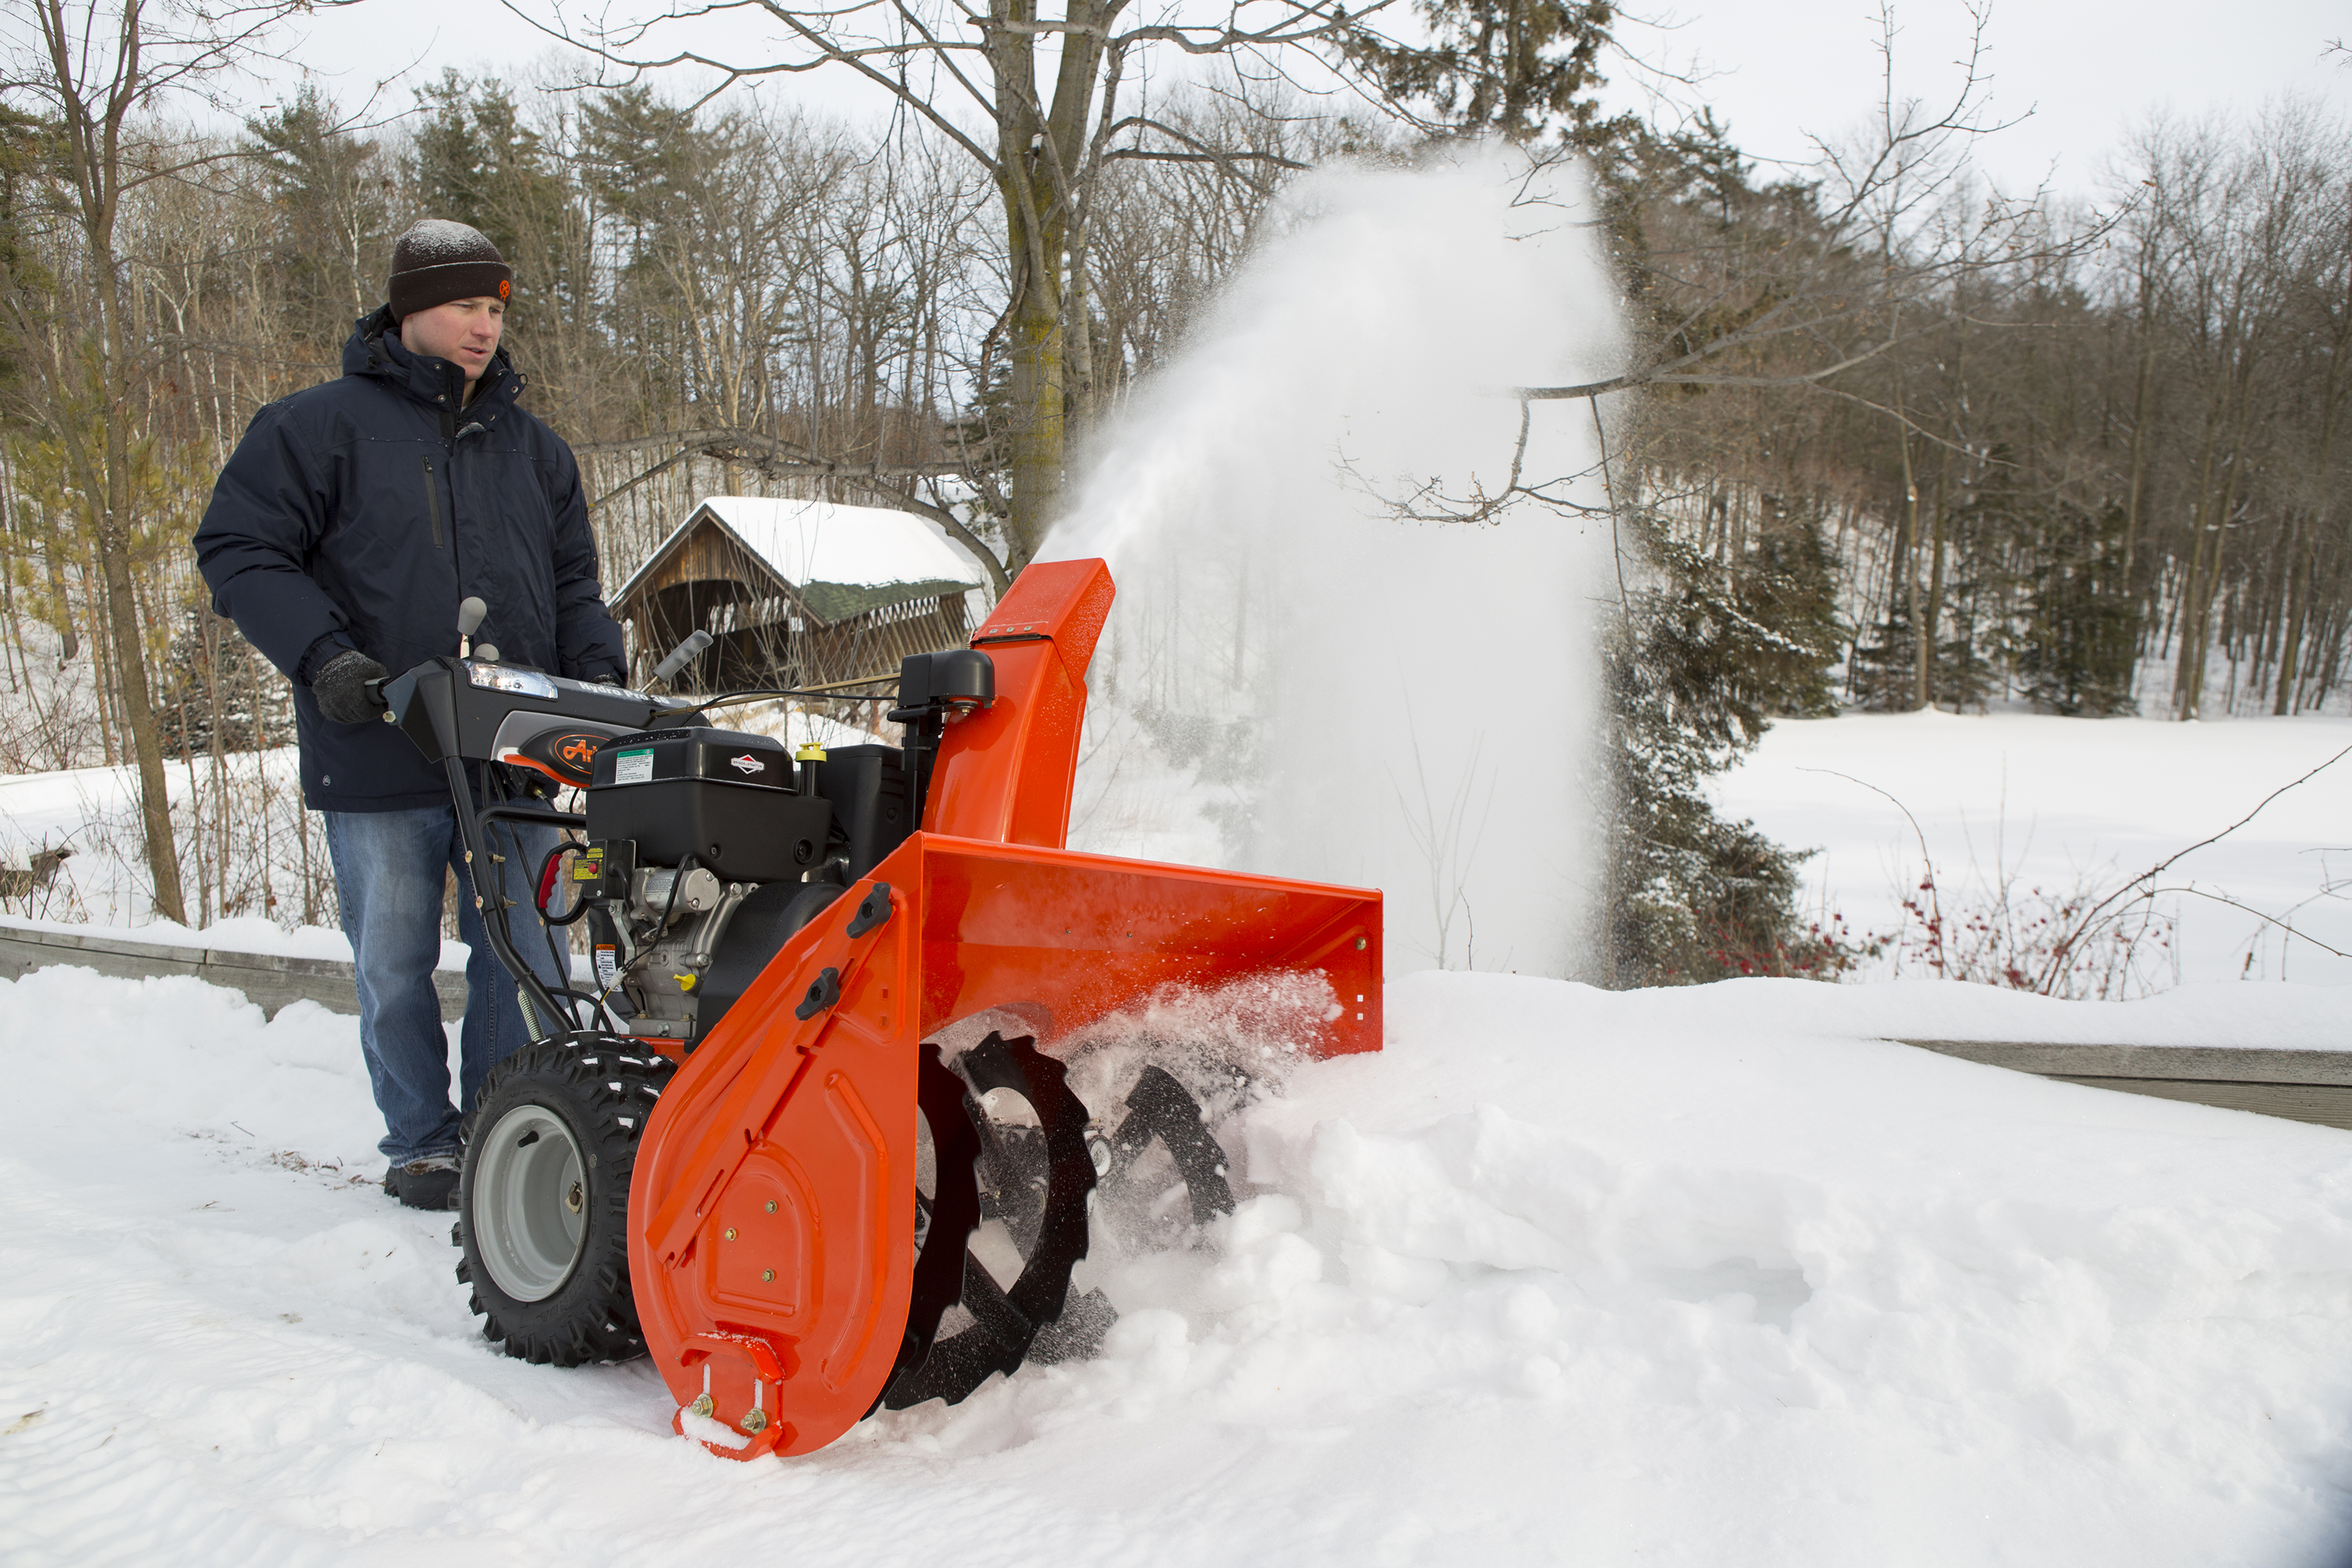 Snowblower in Driveway